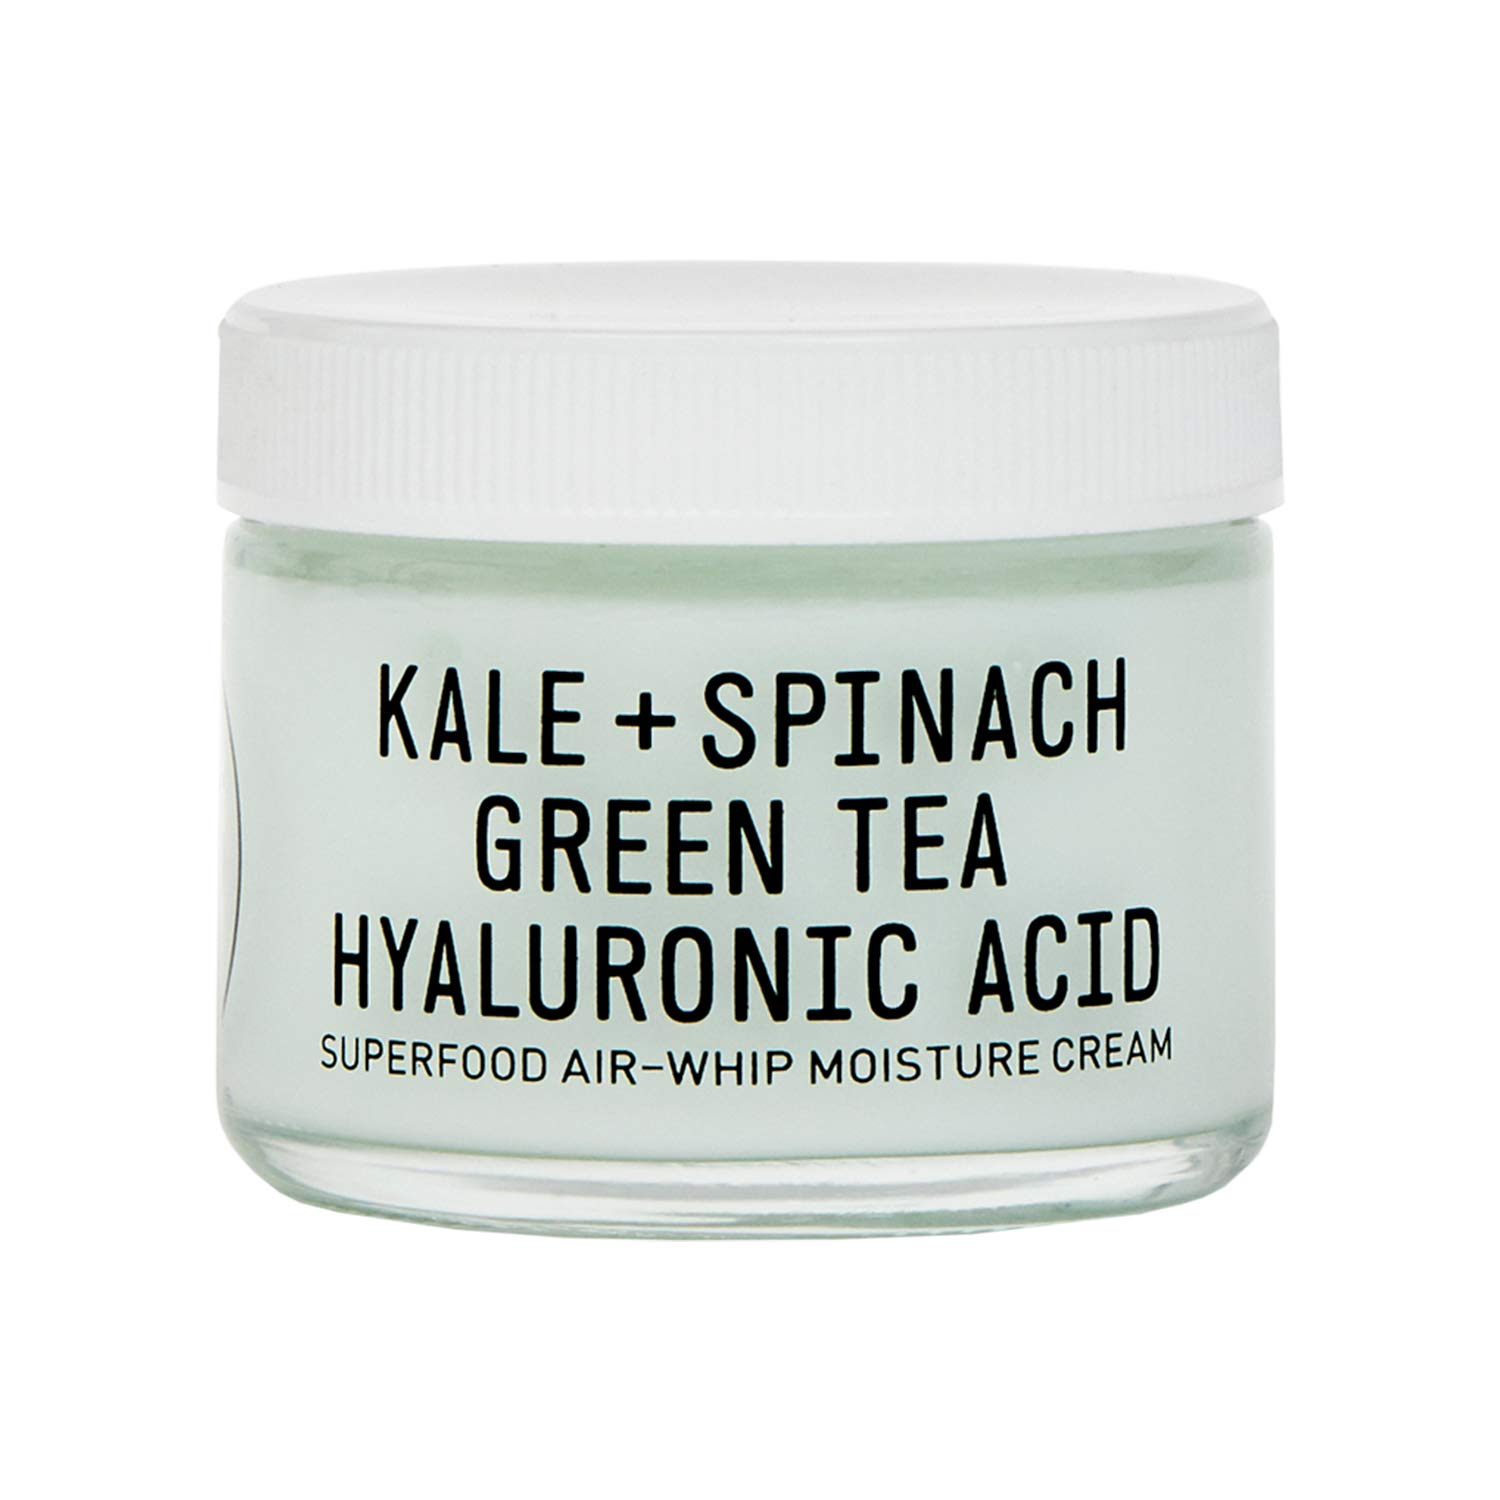 Youth to the People Superfood Hyaluronic Acid Air-Whip Moisture Cream